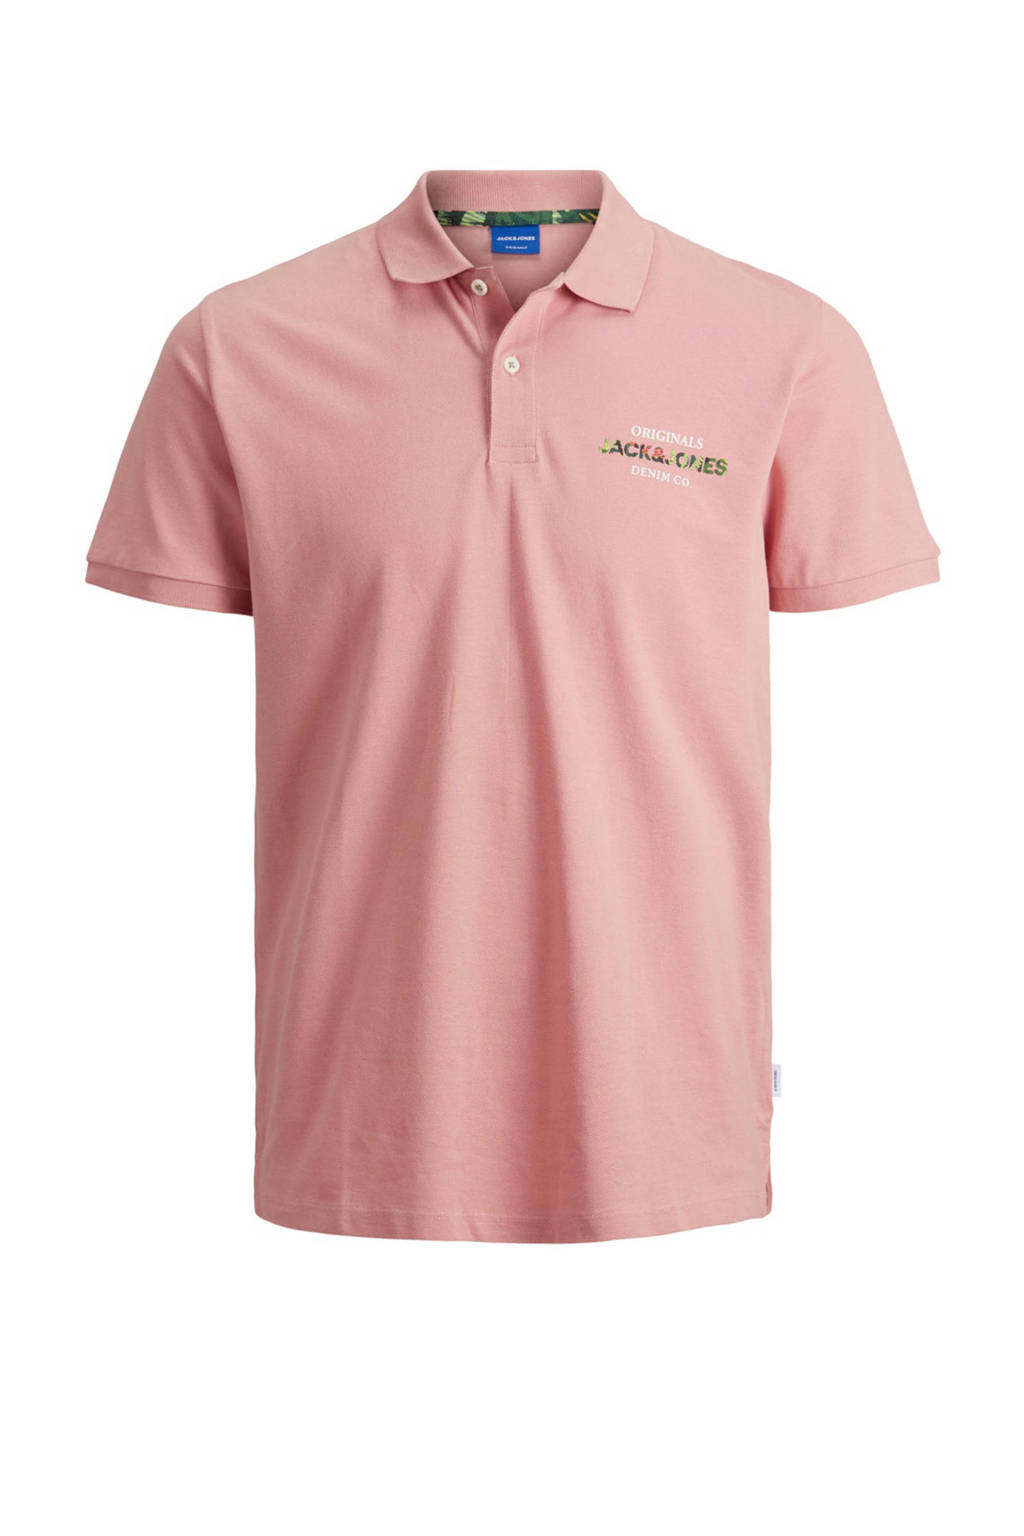 JACK & JONES ORIGINALS slim fit polo roze, Roze